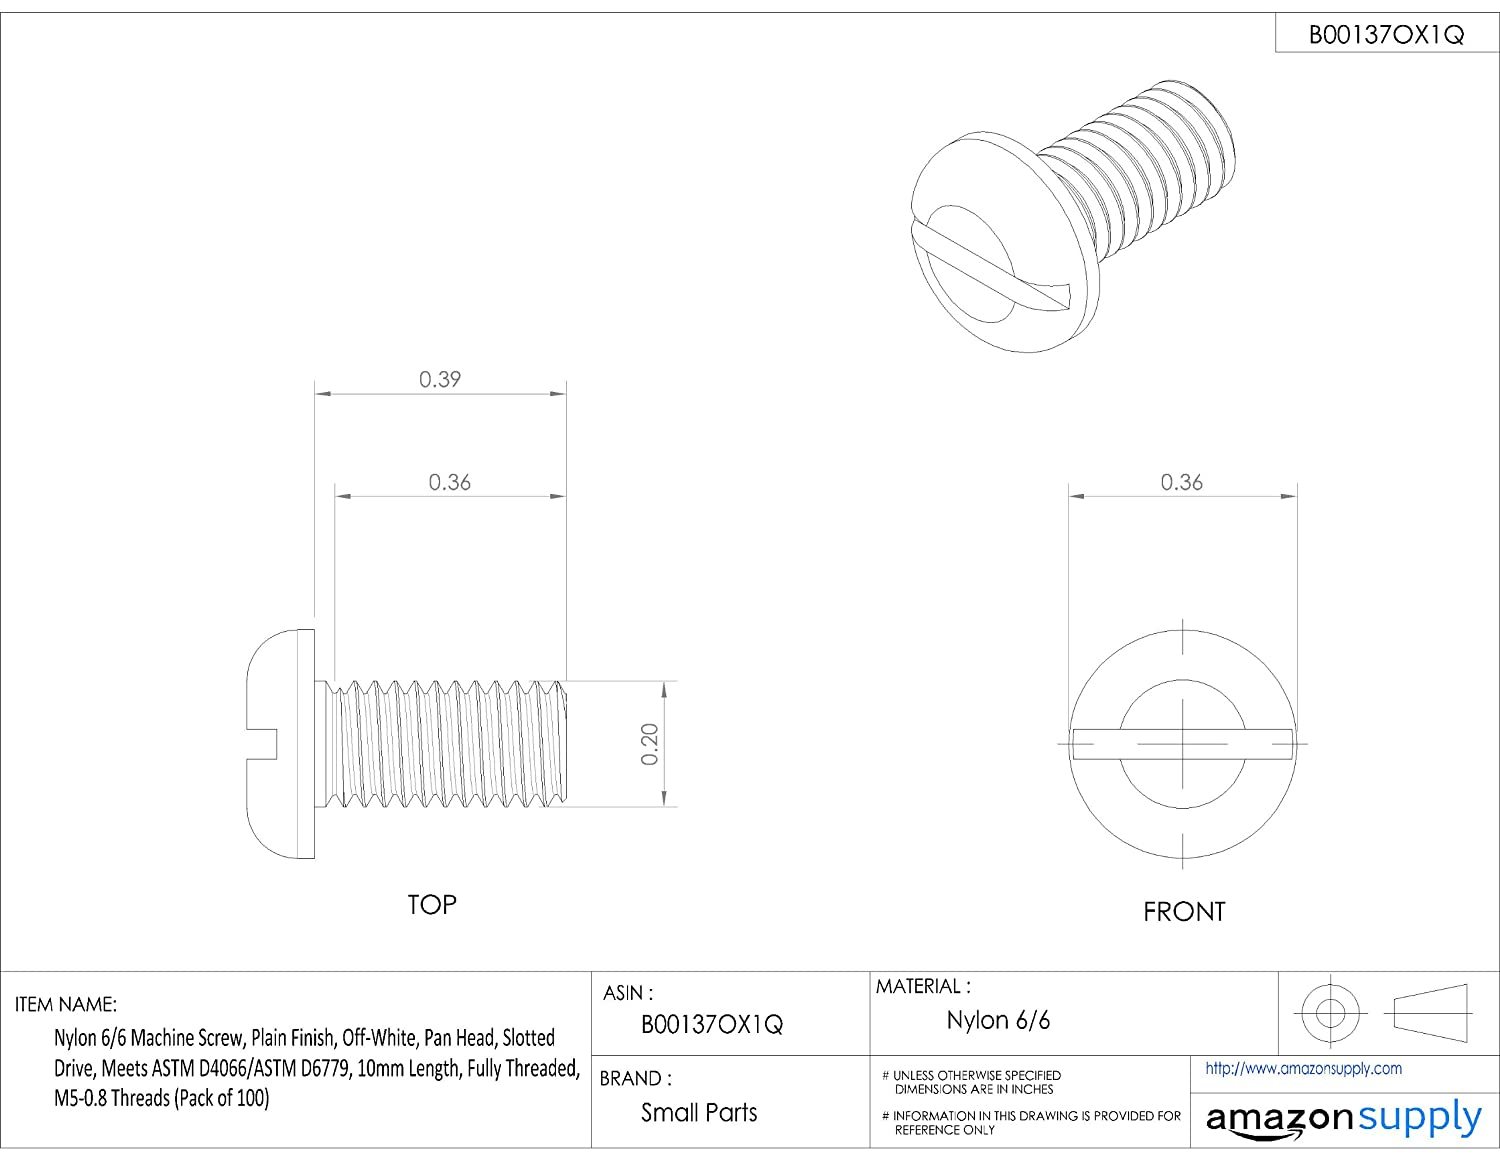 M2.5-0.45 Metric Coarse Threads Slotted Drive Fully Threaded 4mm Length Meets ASTM D4066//ASTM D6779 Plain Finish Pack of 100 Pan Head Off-White Nylon 6//6 Machine Screw